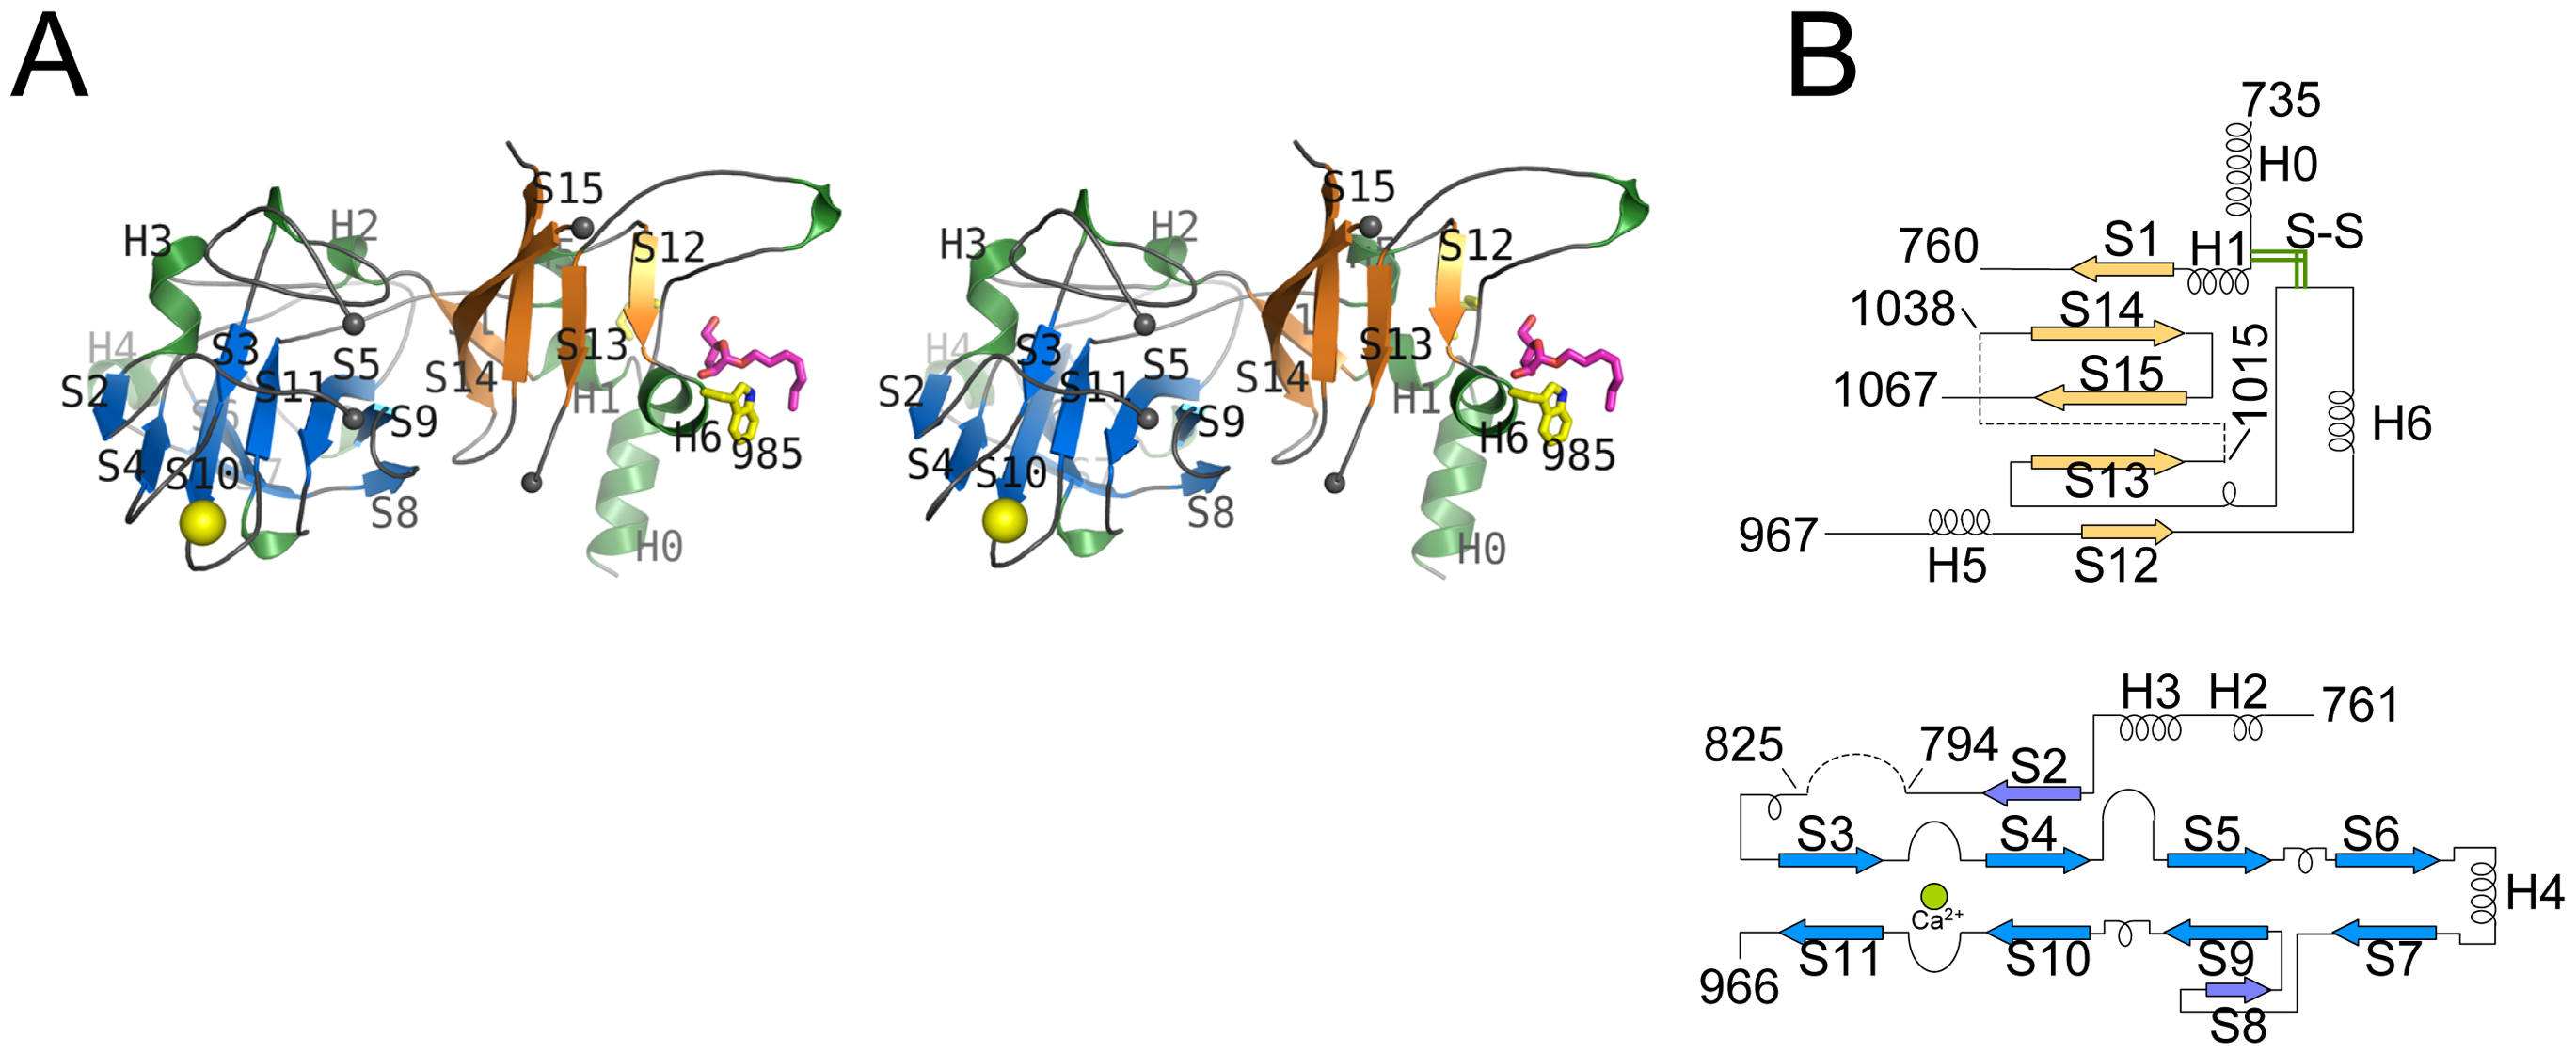 Stereo diagram of EmbC<sup>CT</sup> and topology of its subdomains.